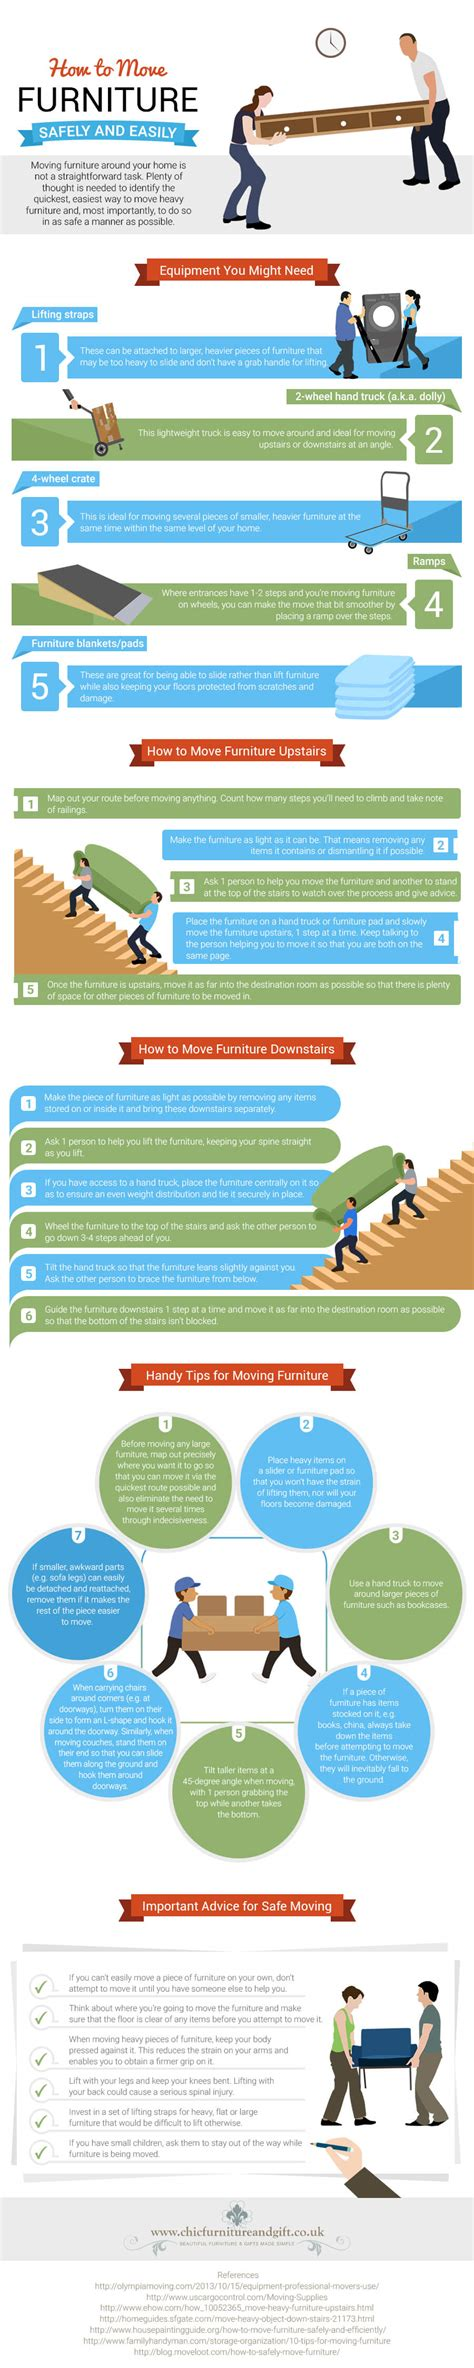 in house furniture movers infographic how to move furniture safely and easily kravelv